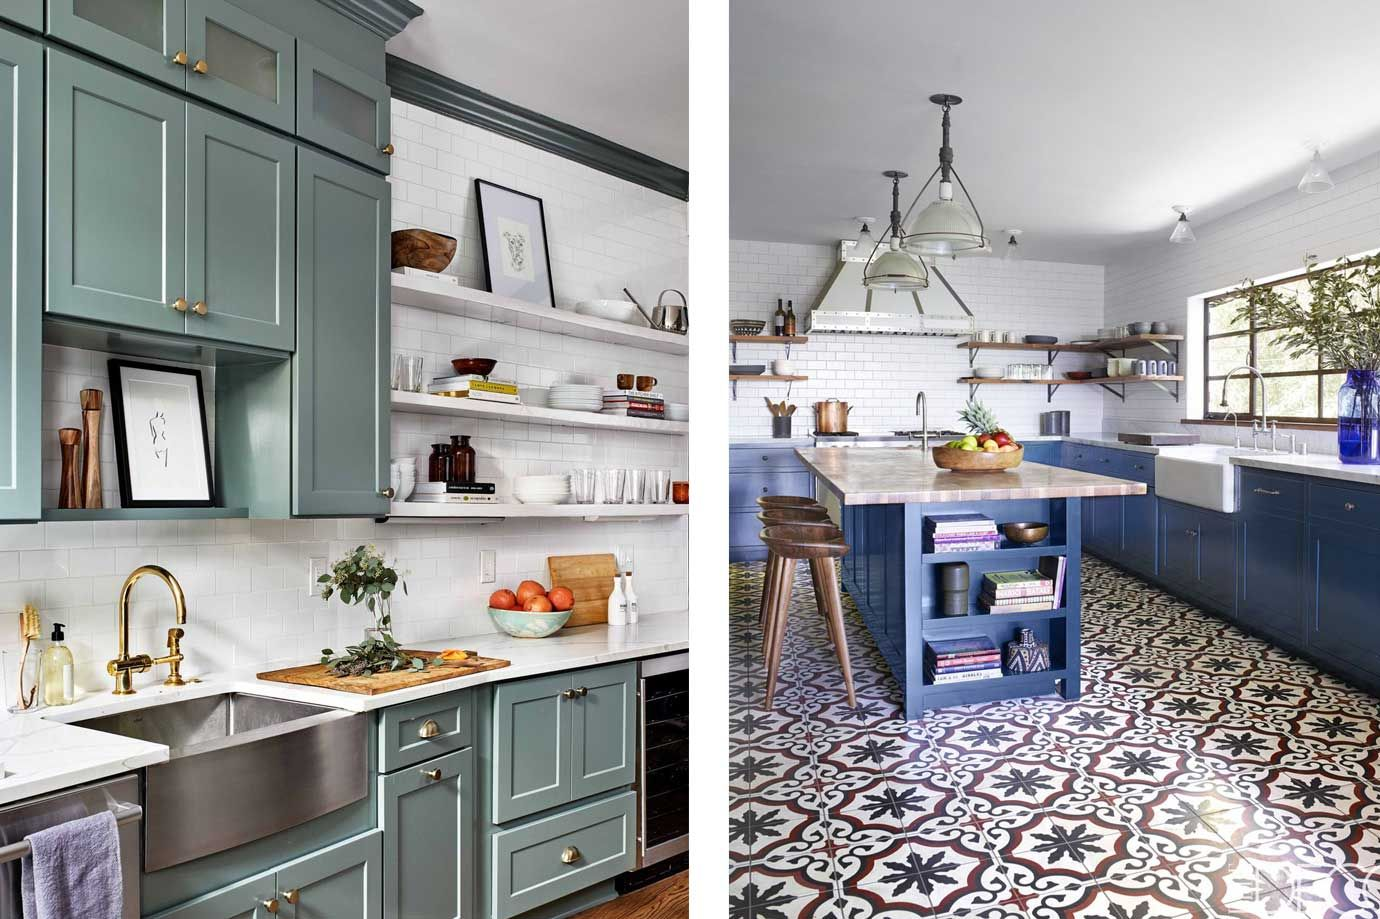 How To Tile Your Kitchen